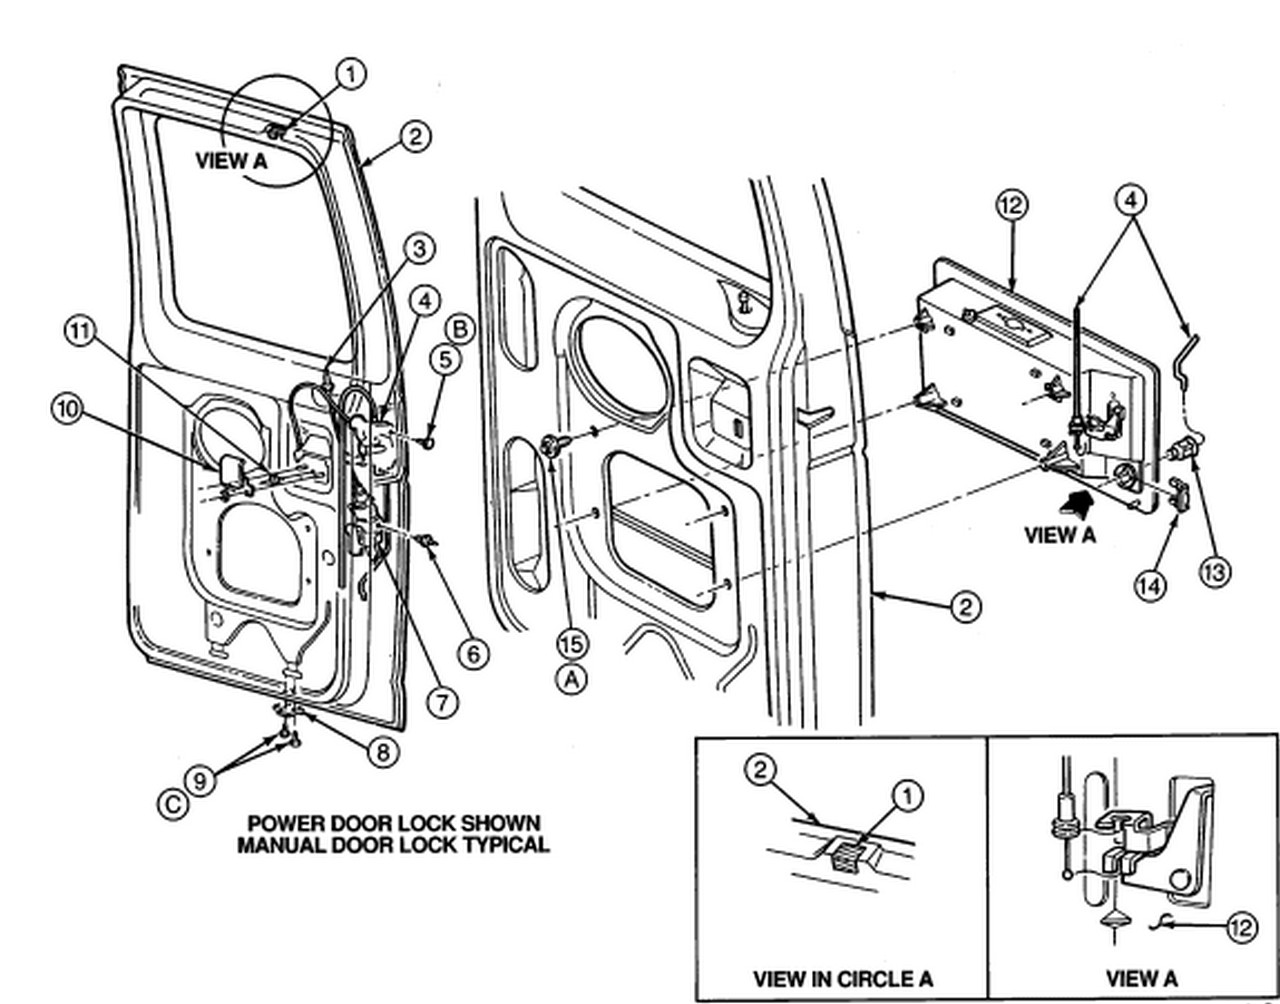 2000 ford econoline van repair manual